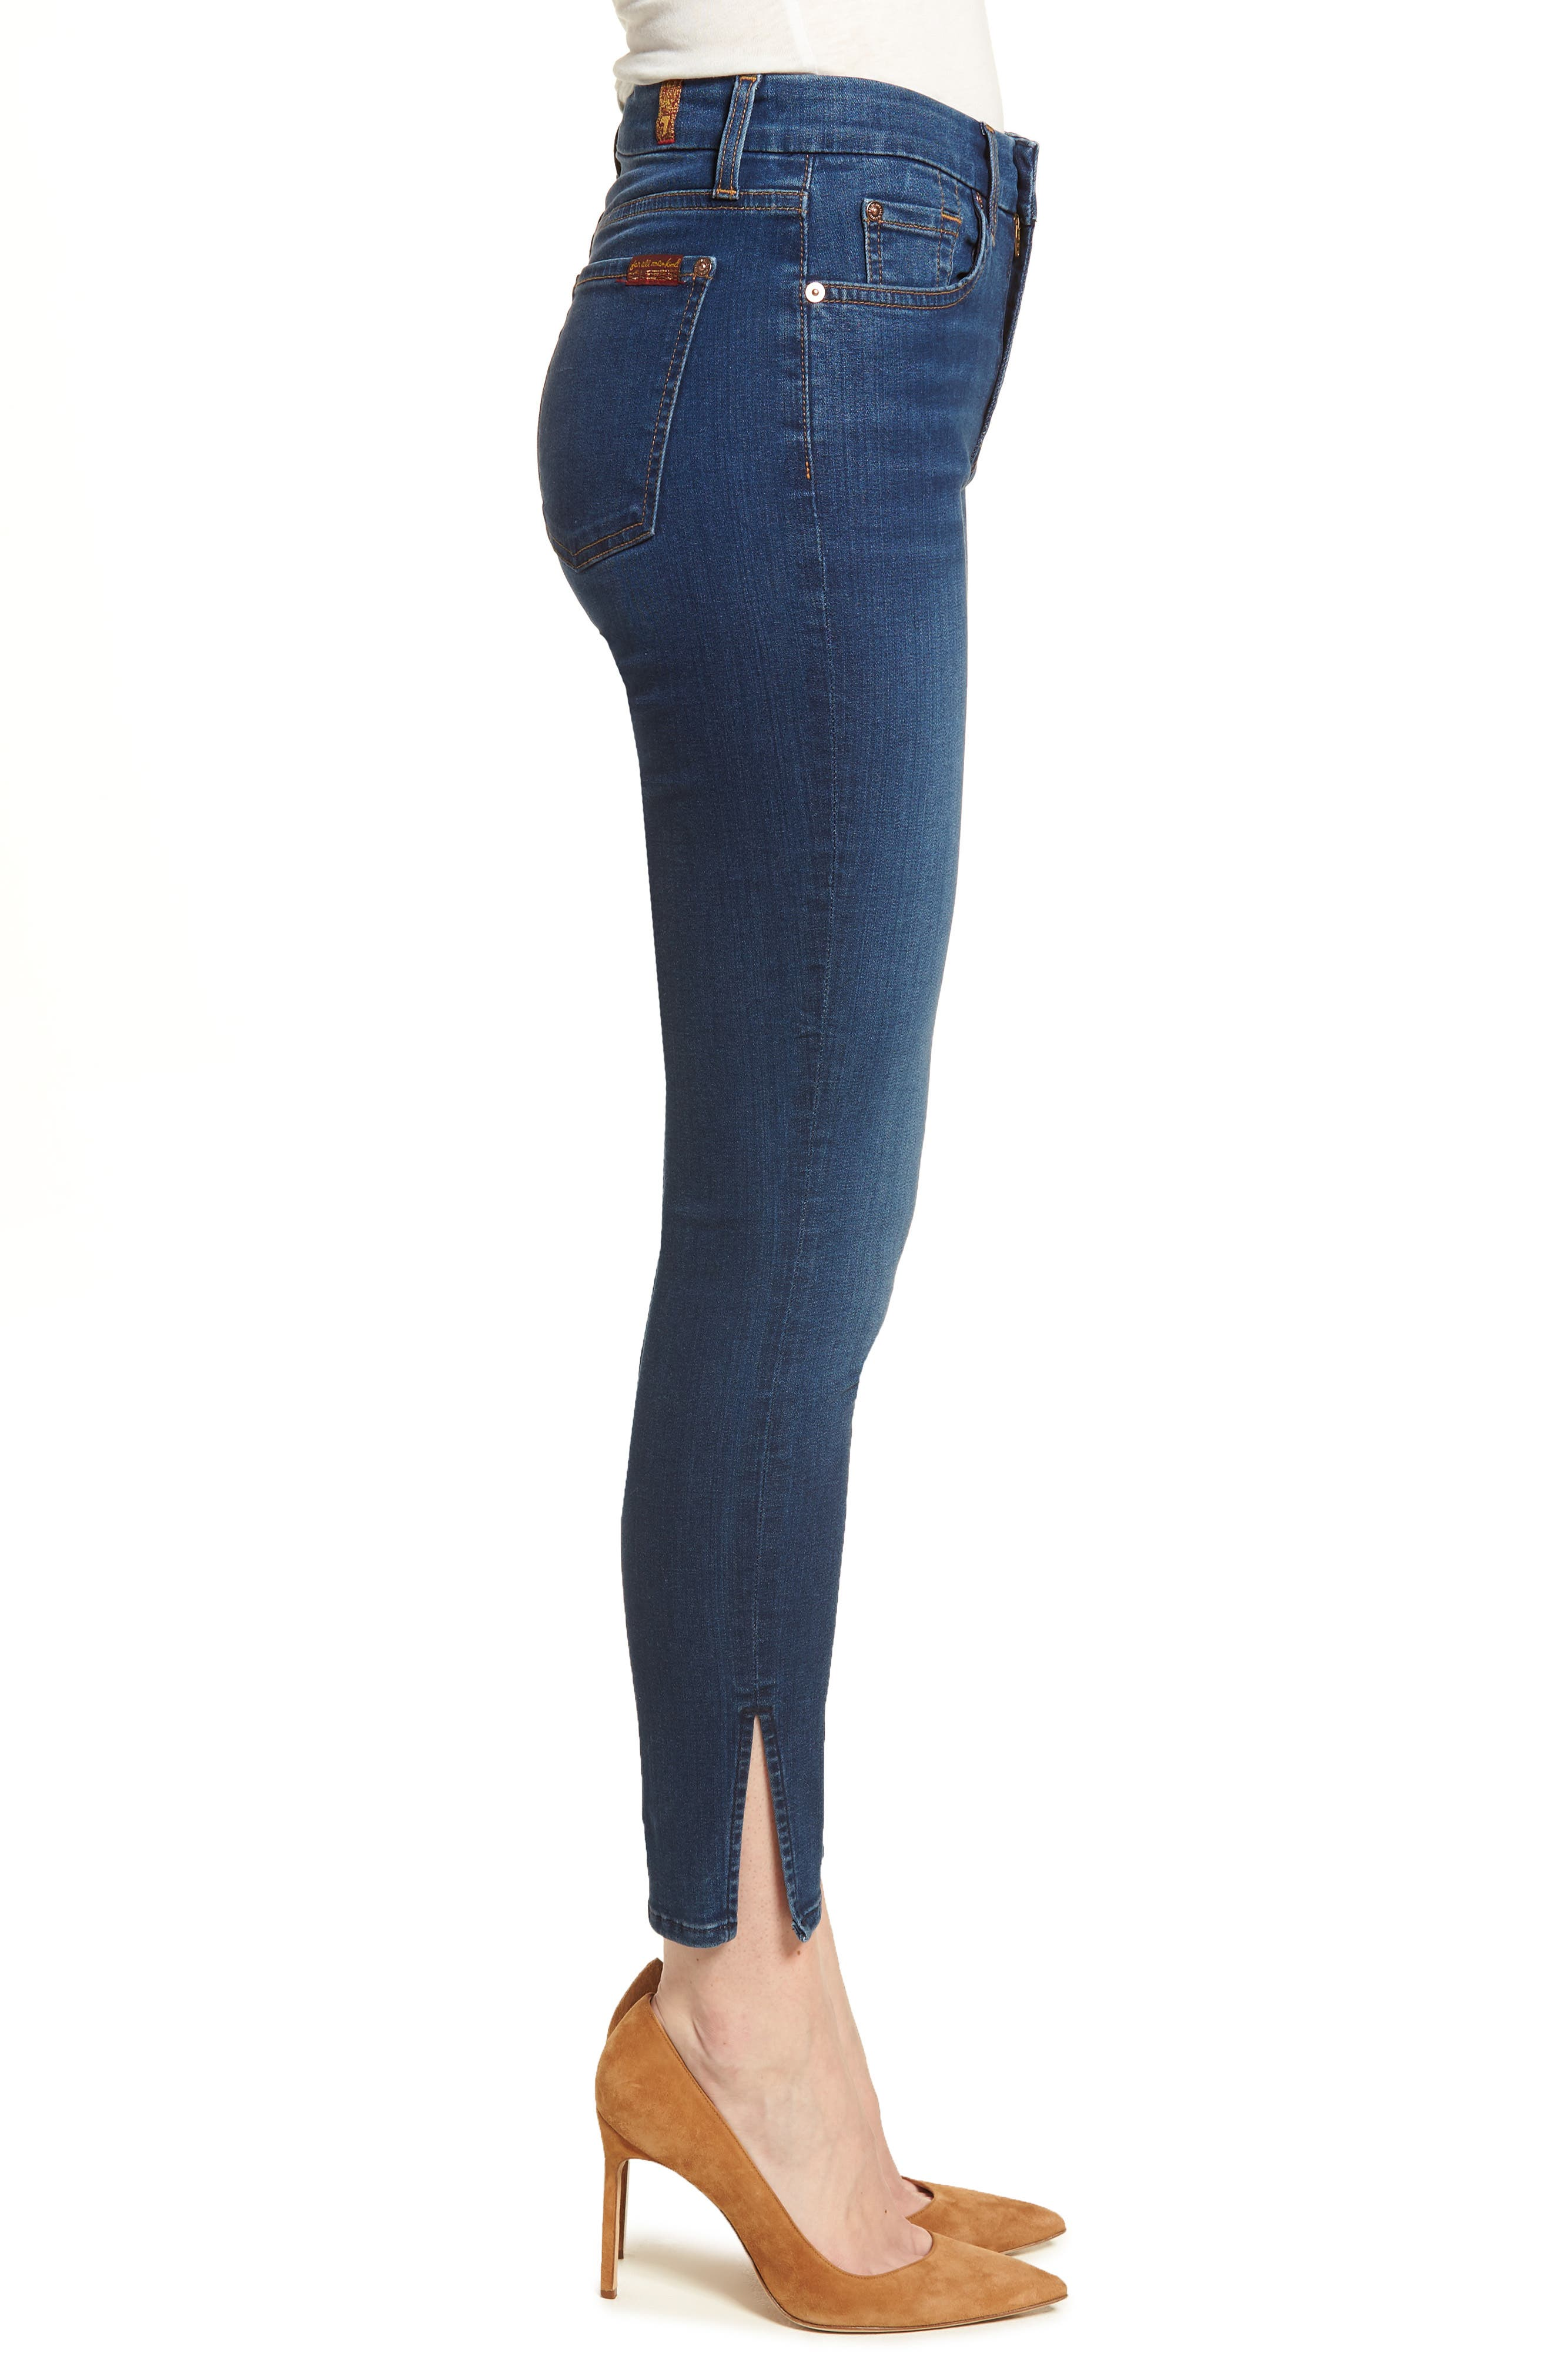 b(air) - Aubrey High Waist Skinny Jeans,                             Alternate thumbnail 3, color,                             400